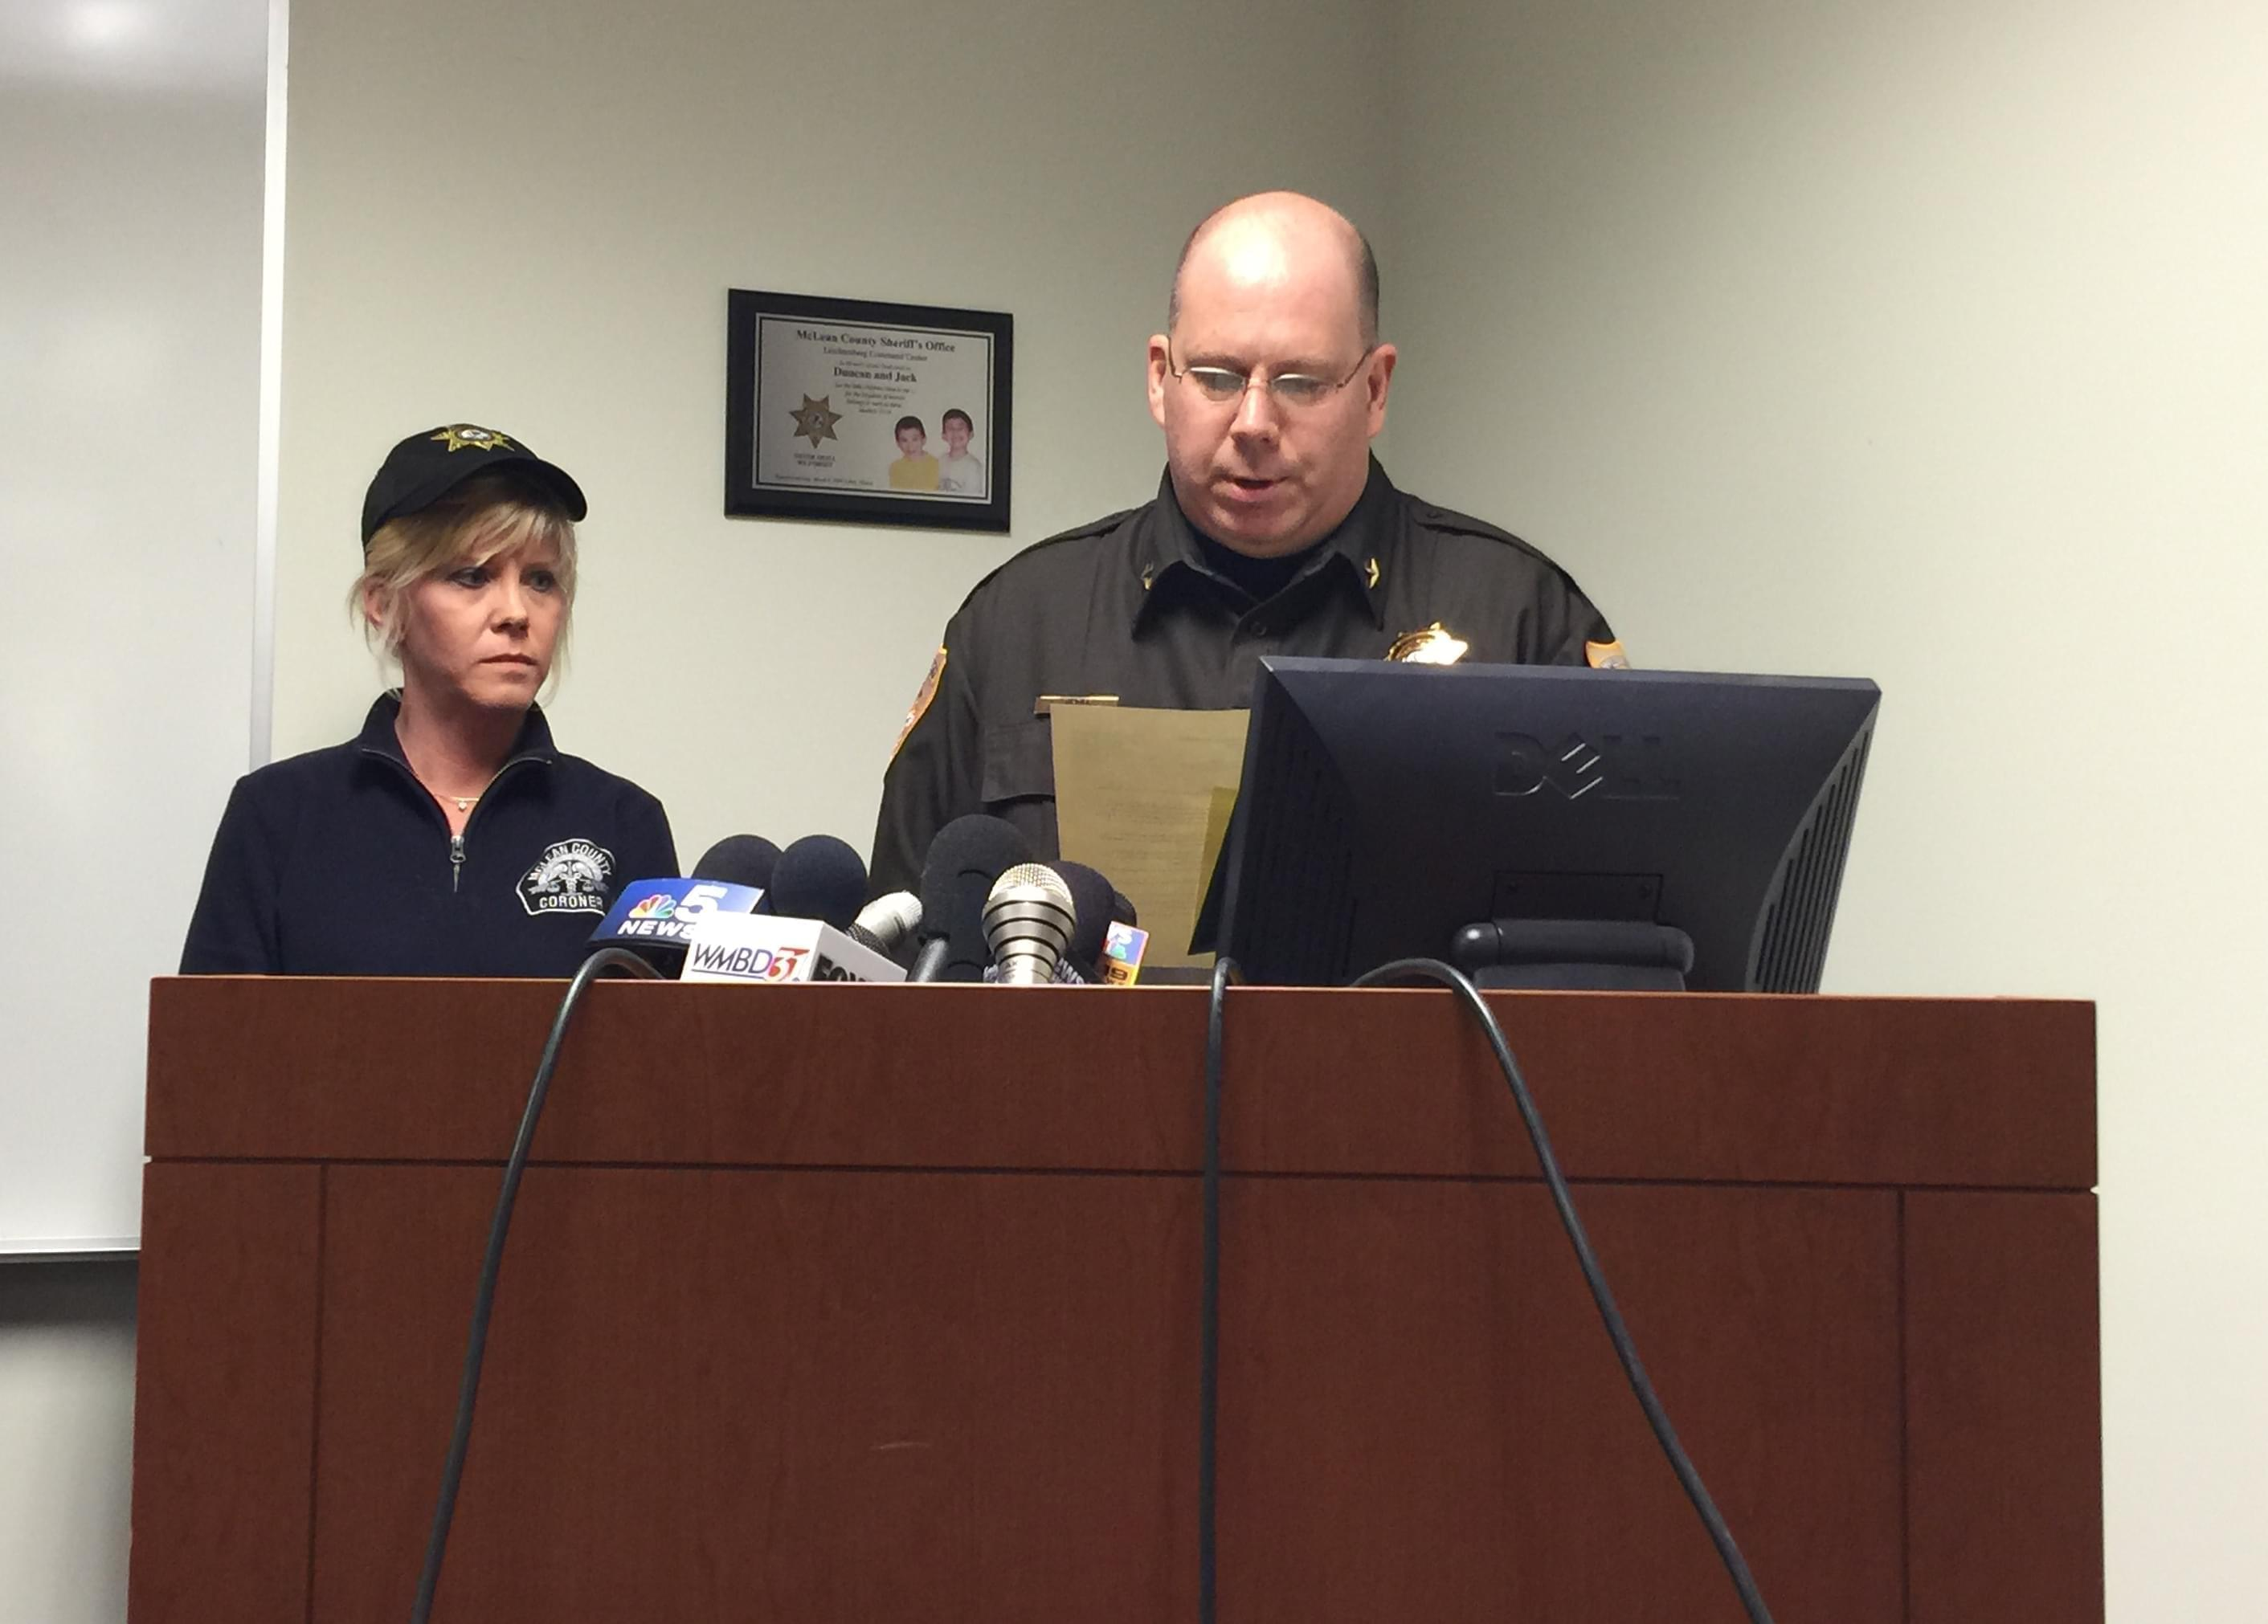 McLean County Sheriff Jon Sandage joined by Coroner Kathleen Davis as he reads a statement to reporters Tuesday.